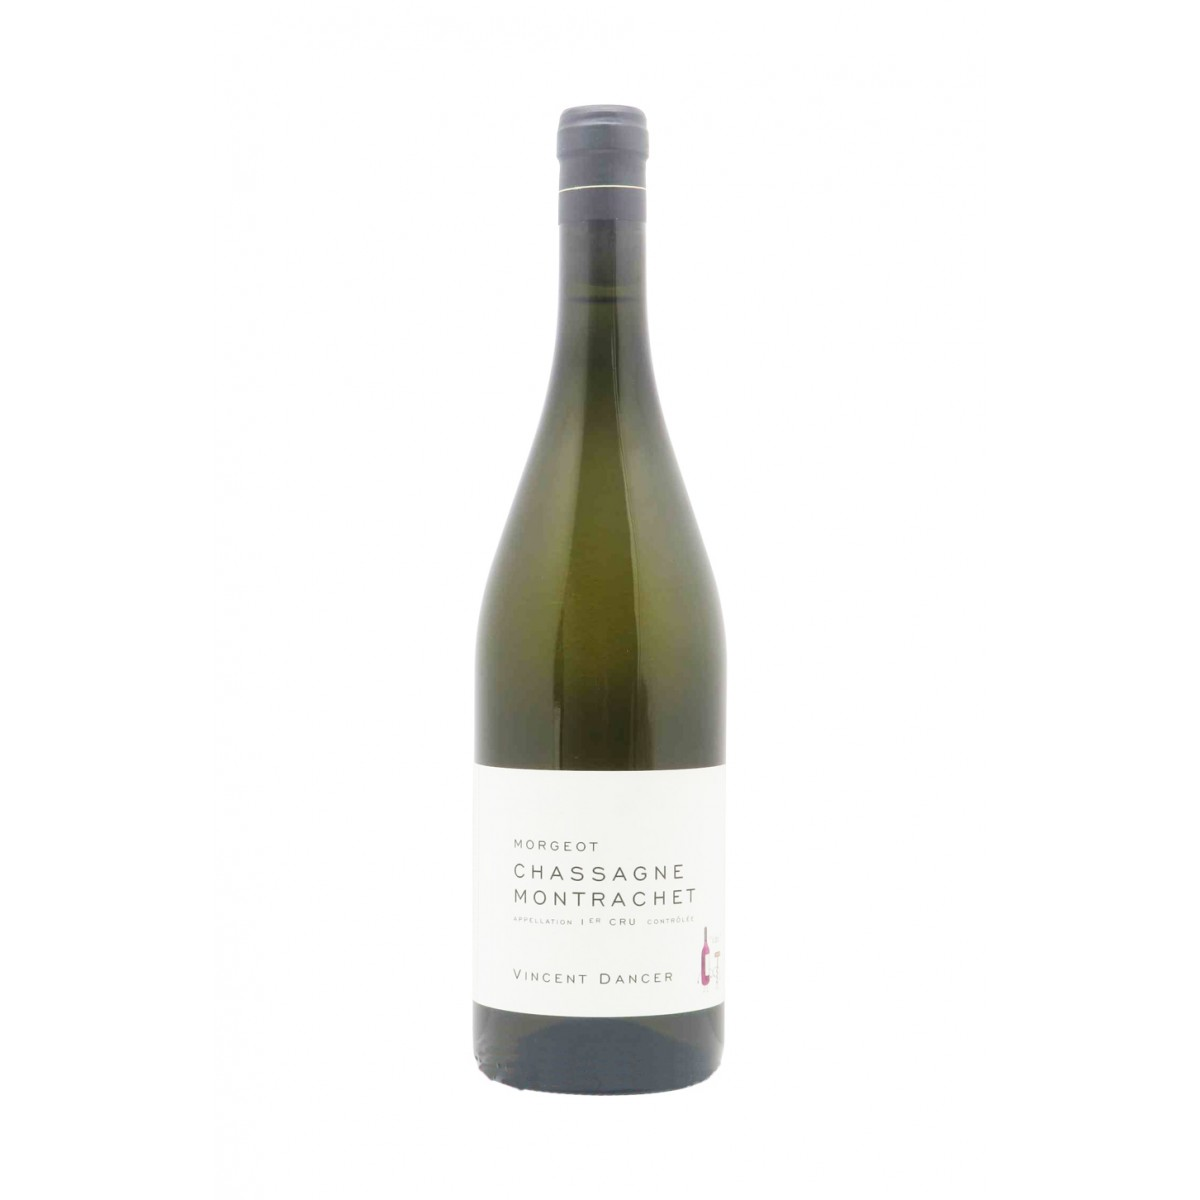 Chassagne Montrachet 1er Cru Morgeot Blanc 2017 - Domaine Vincent Dancer